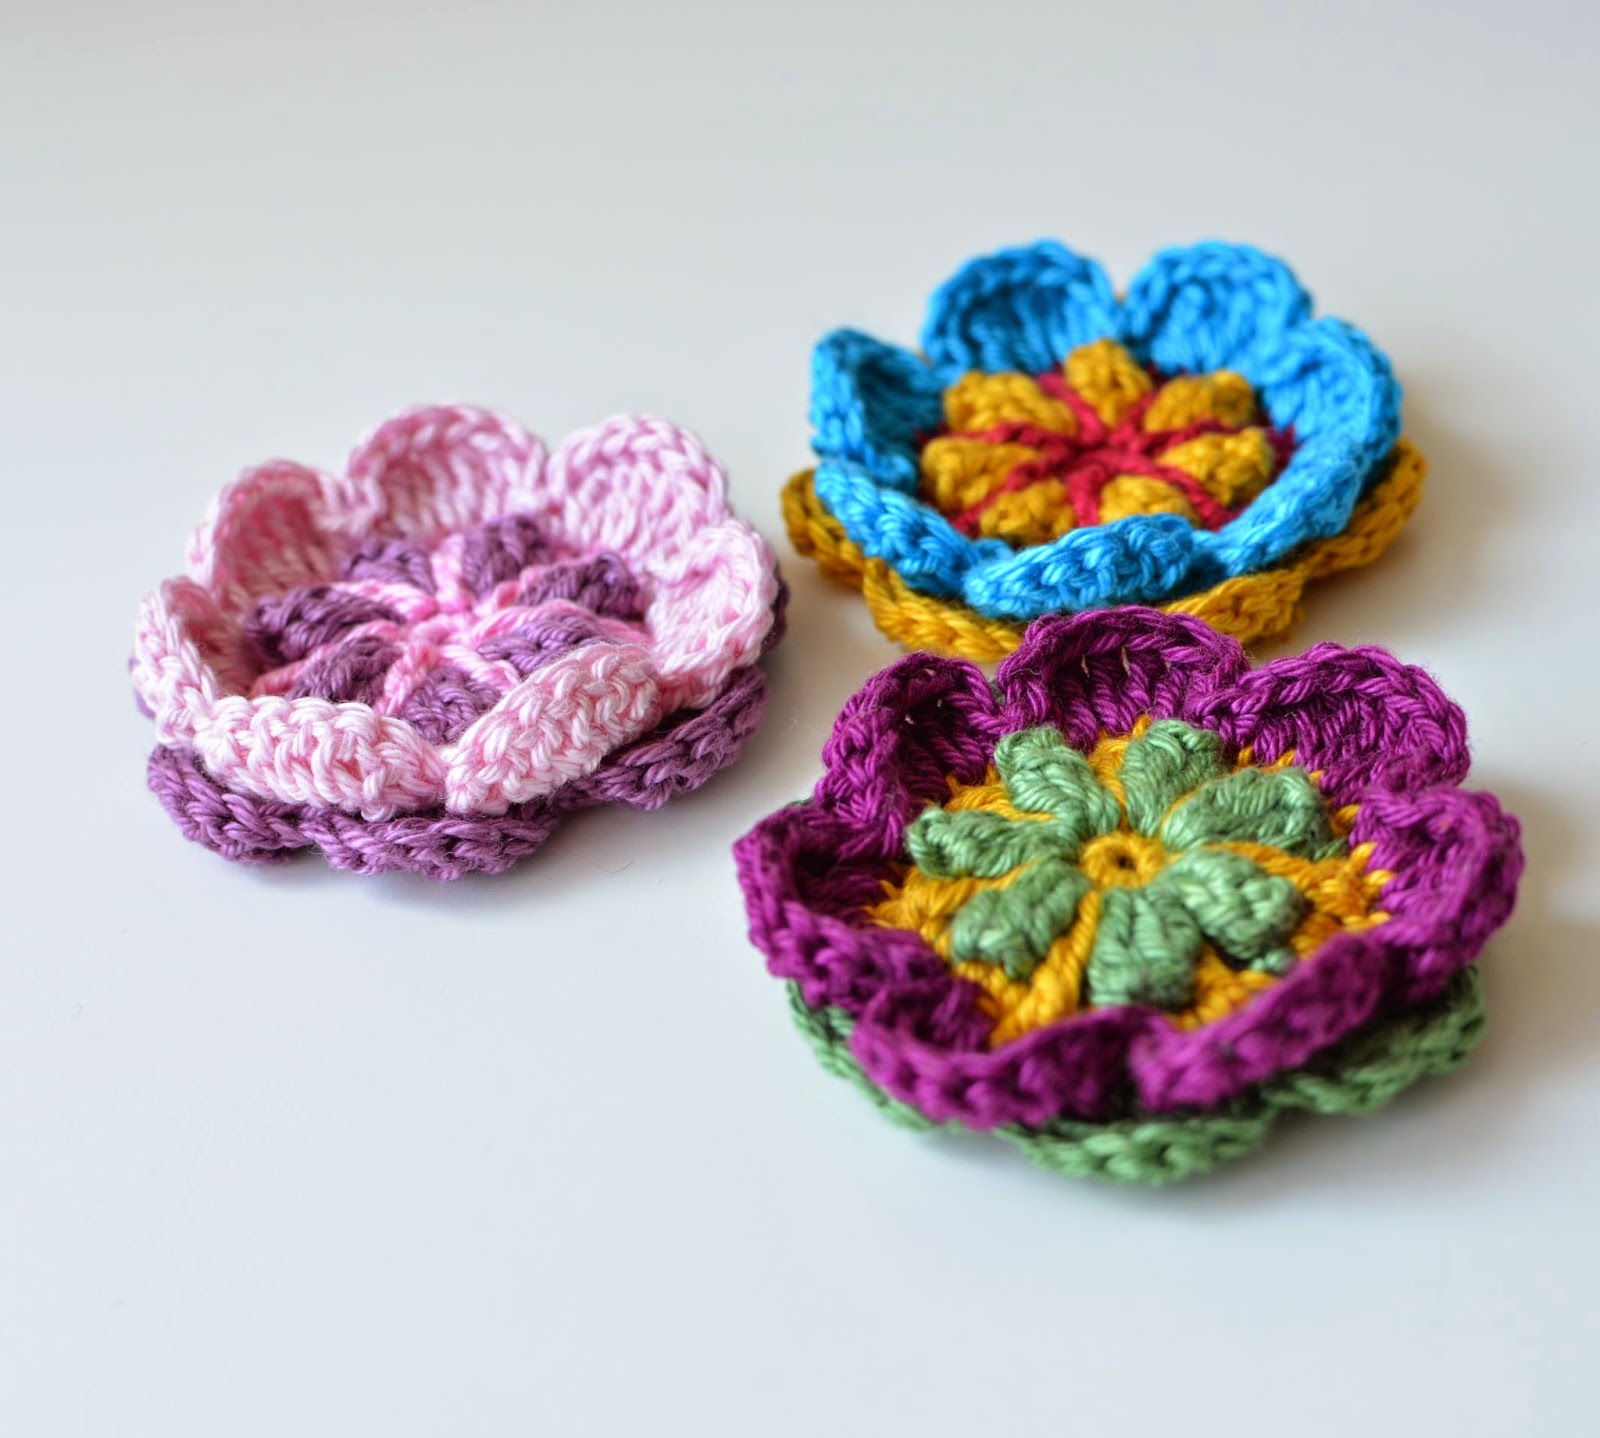 Crochet Flower Pin Patterns Free : Free Pattern: Overlay Flower Brooch LillaBj?rns Crochet ...